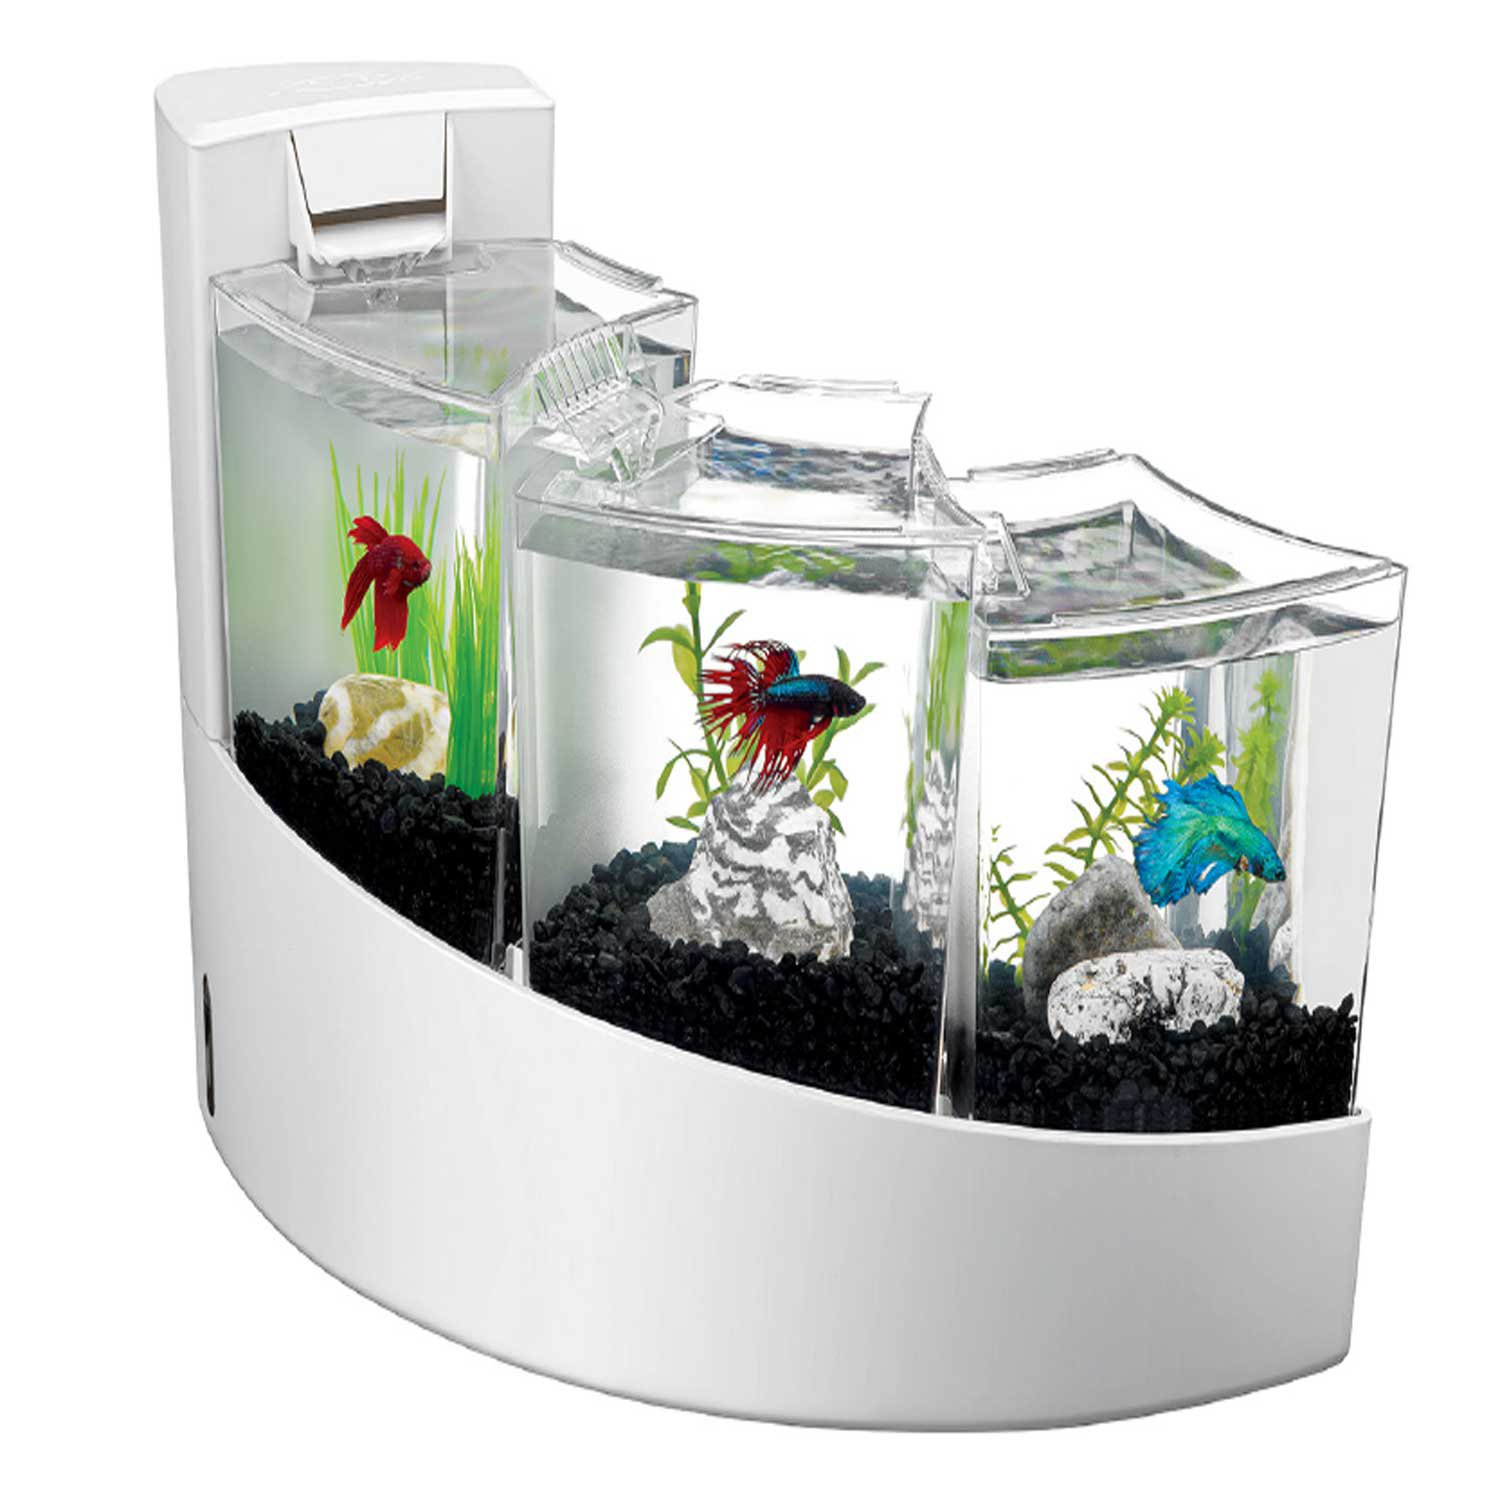 Aqueon Betta Falls Aquarium Kit in White Petco Store